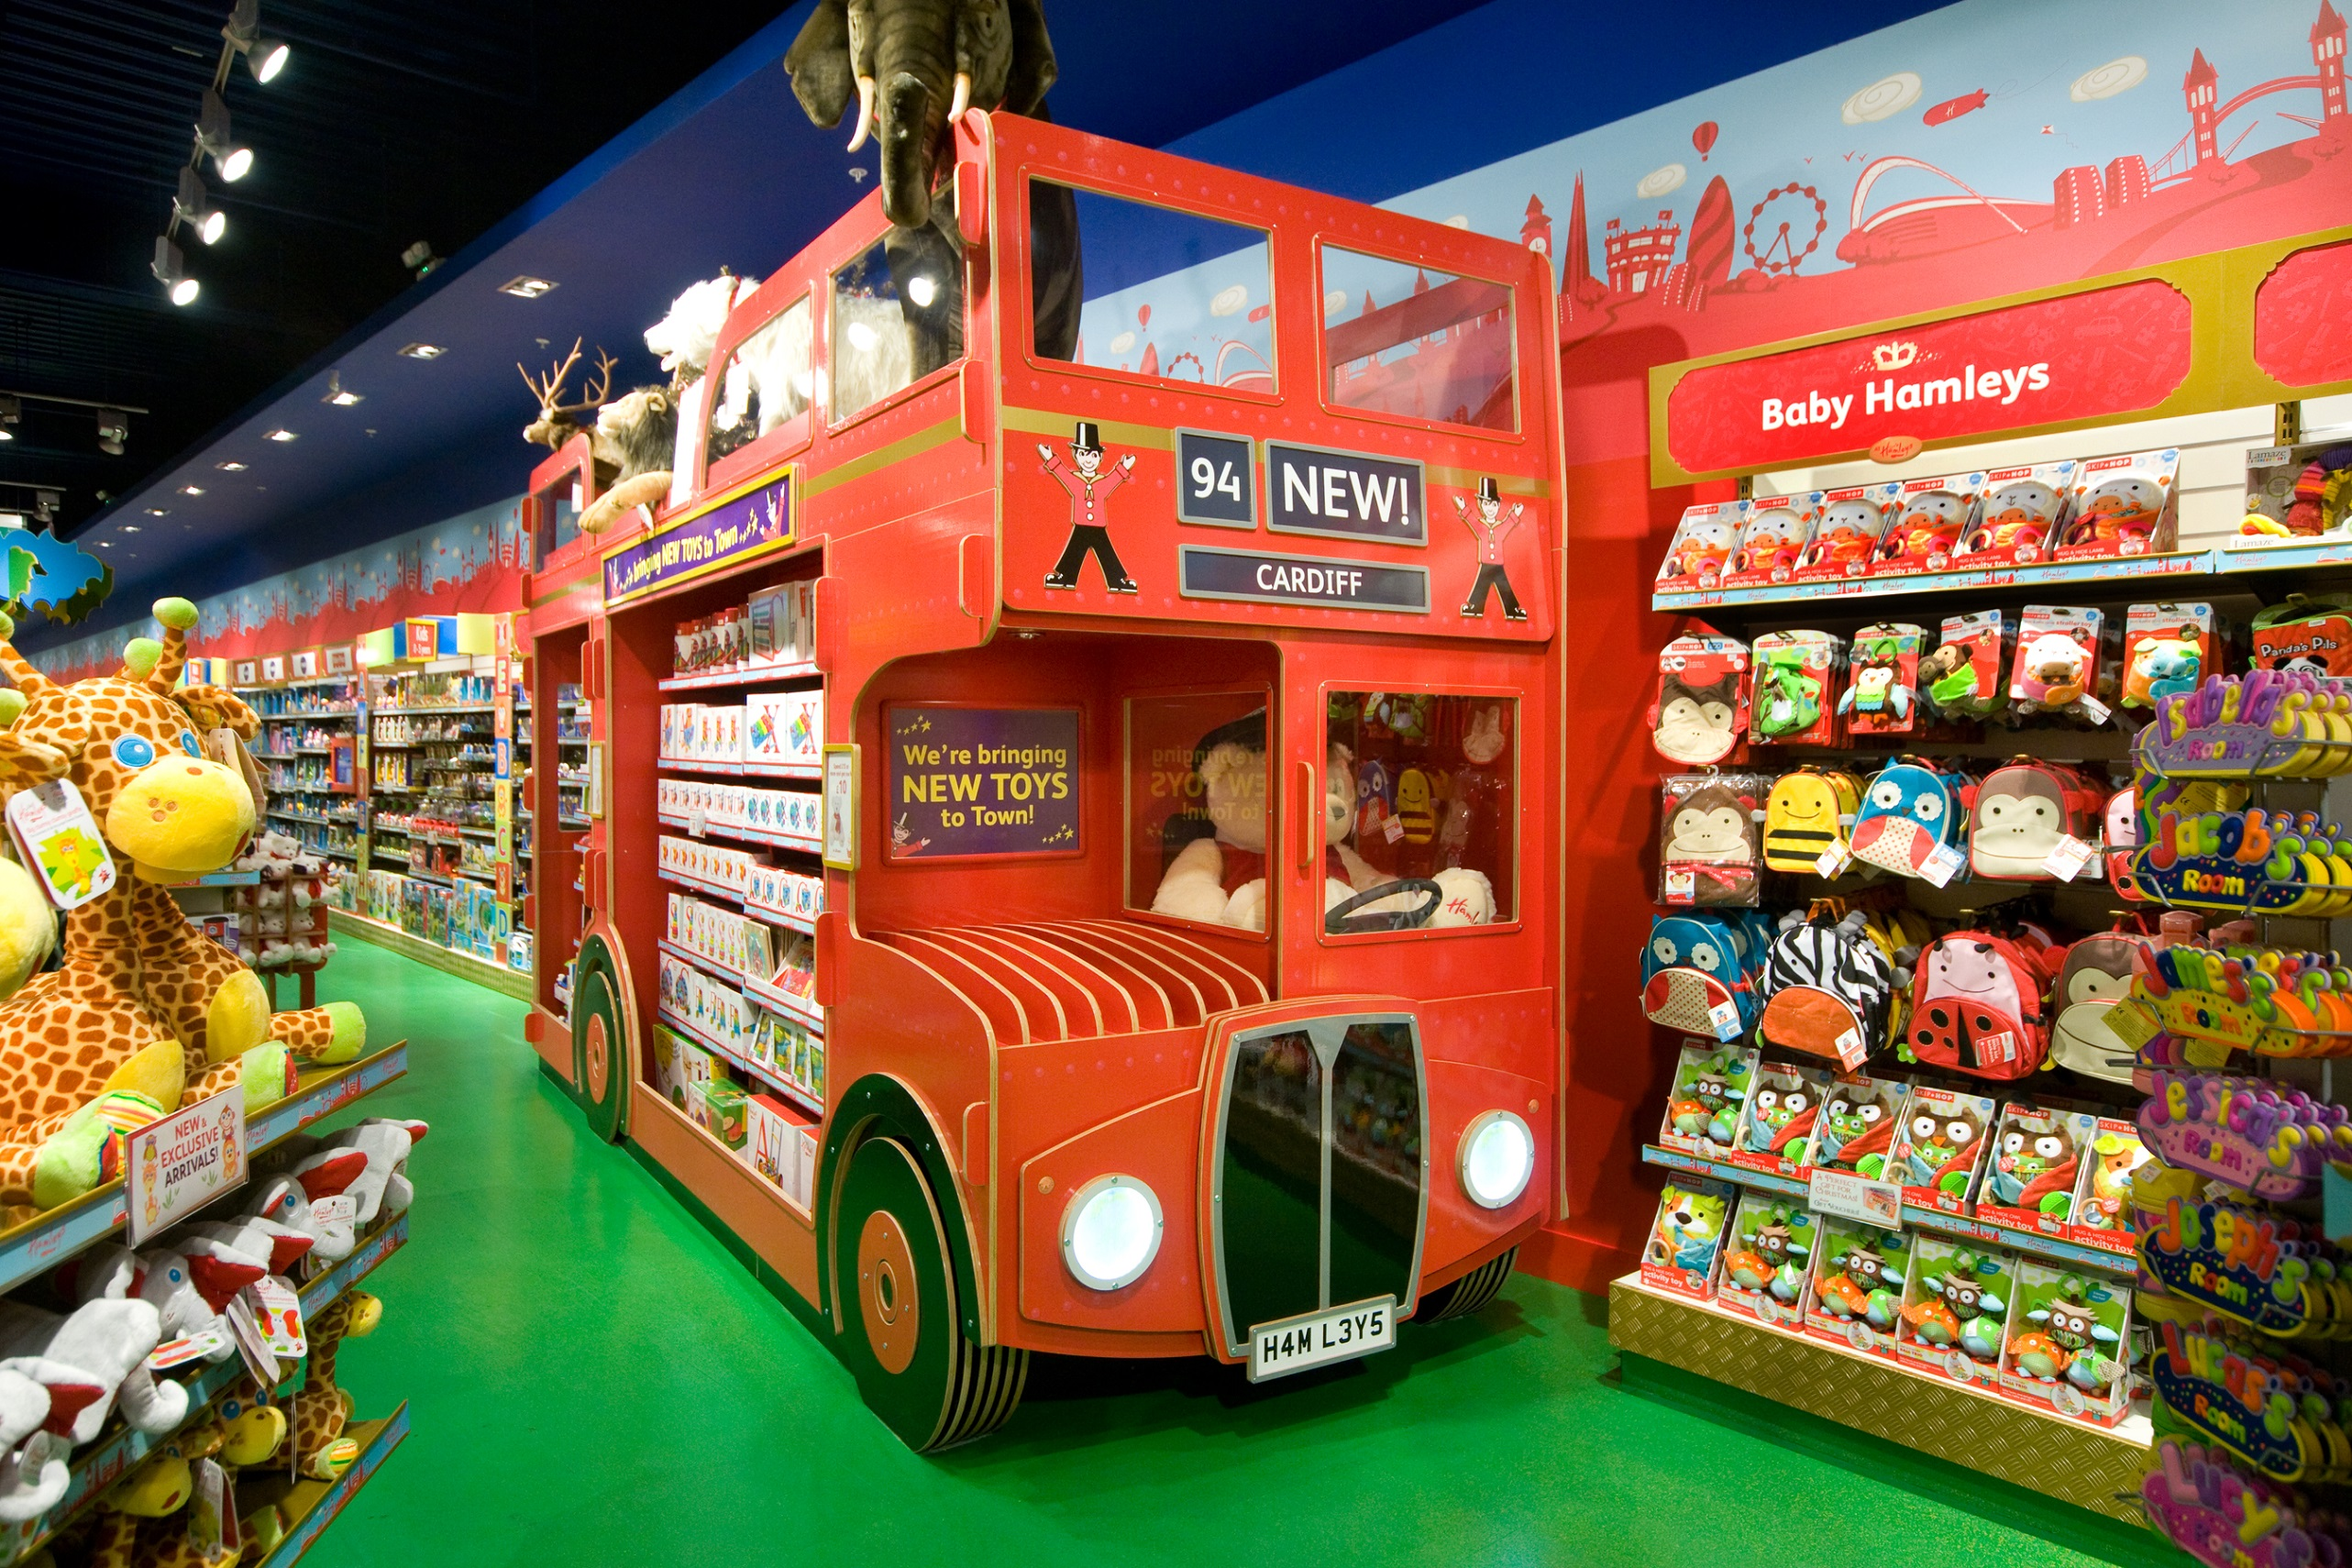 Toys From Hamleys : Hamleys the finest toy shop in world sharonsree